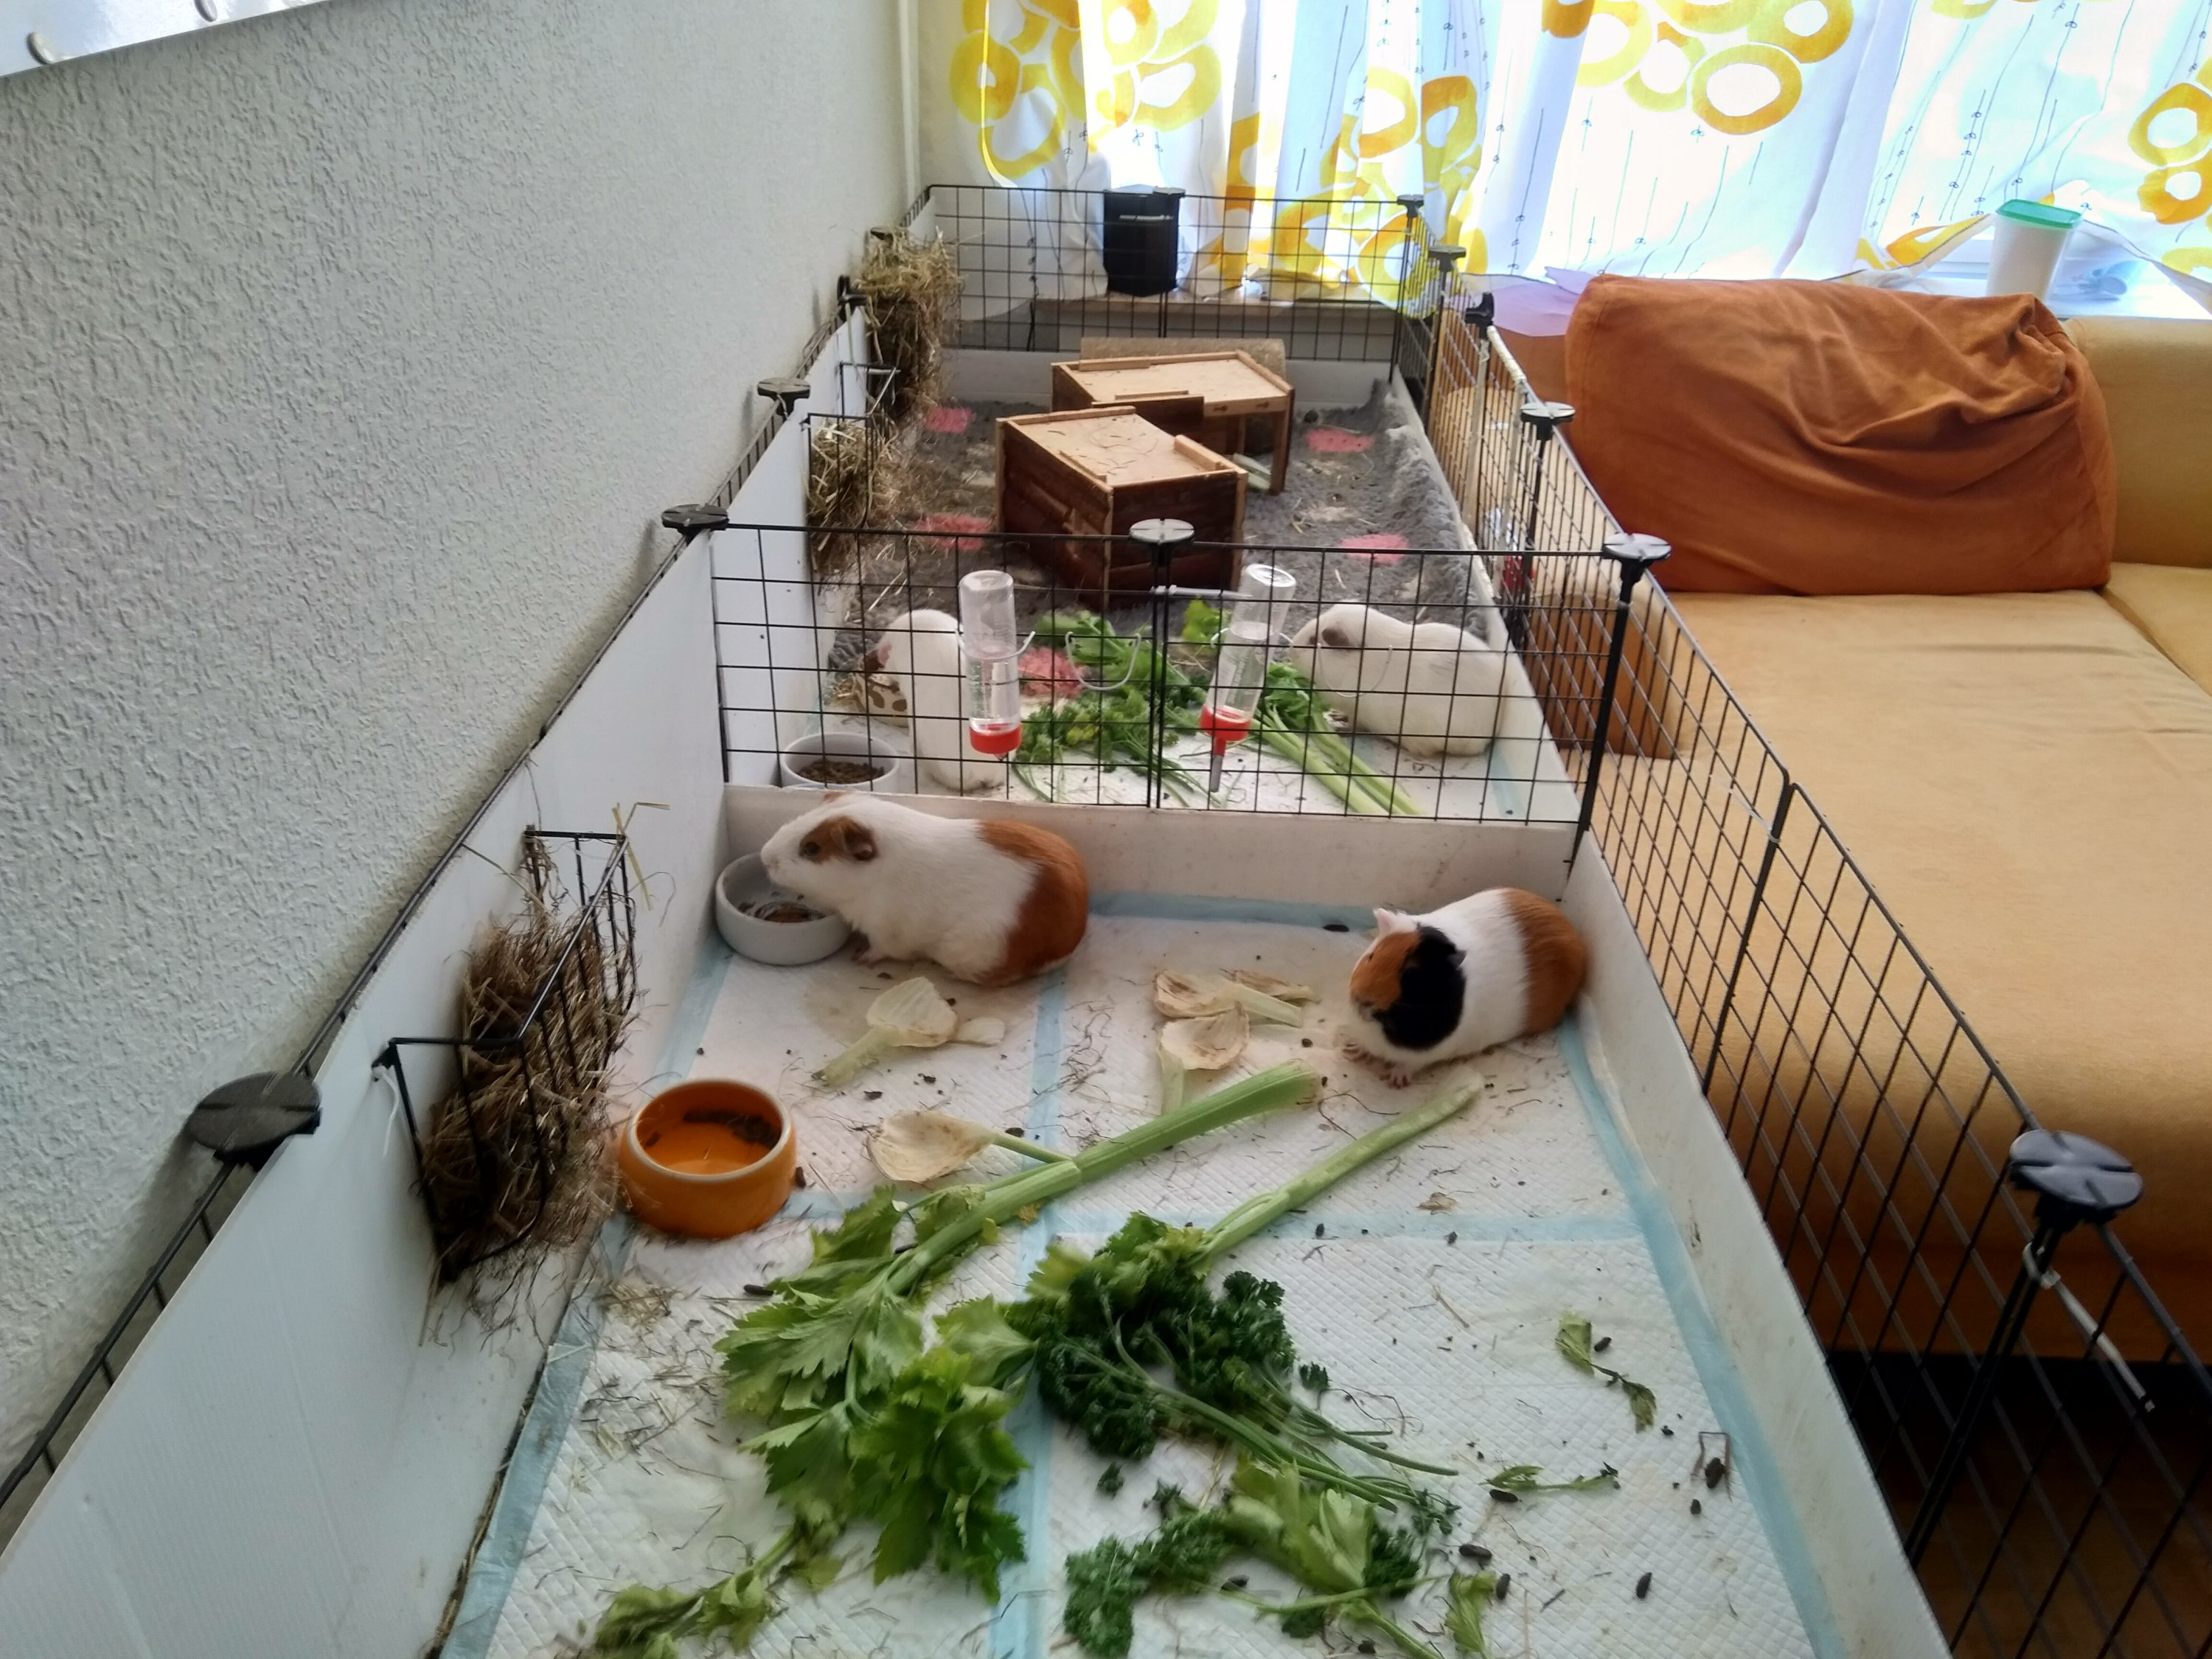 Bumblefoot and The Gang – The tales of the Guinea Pigs' Gang